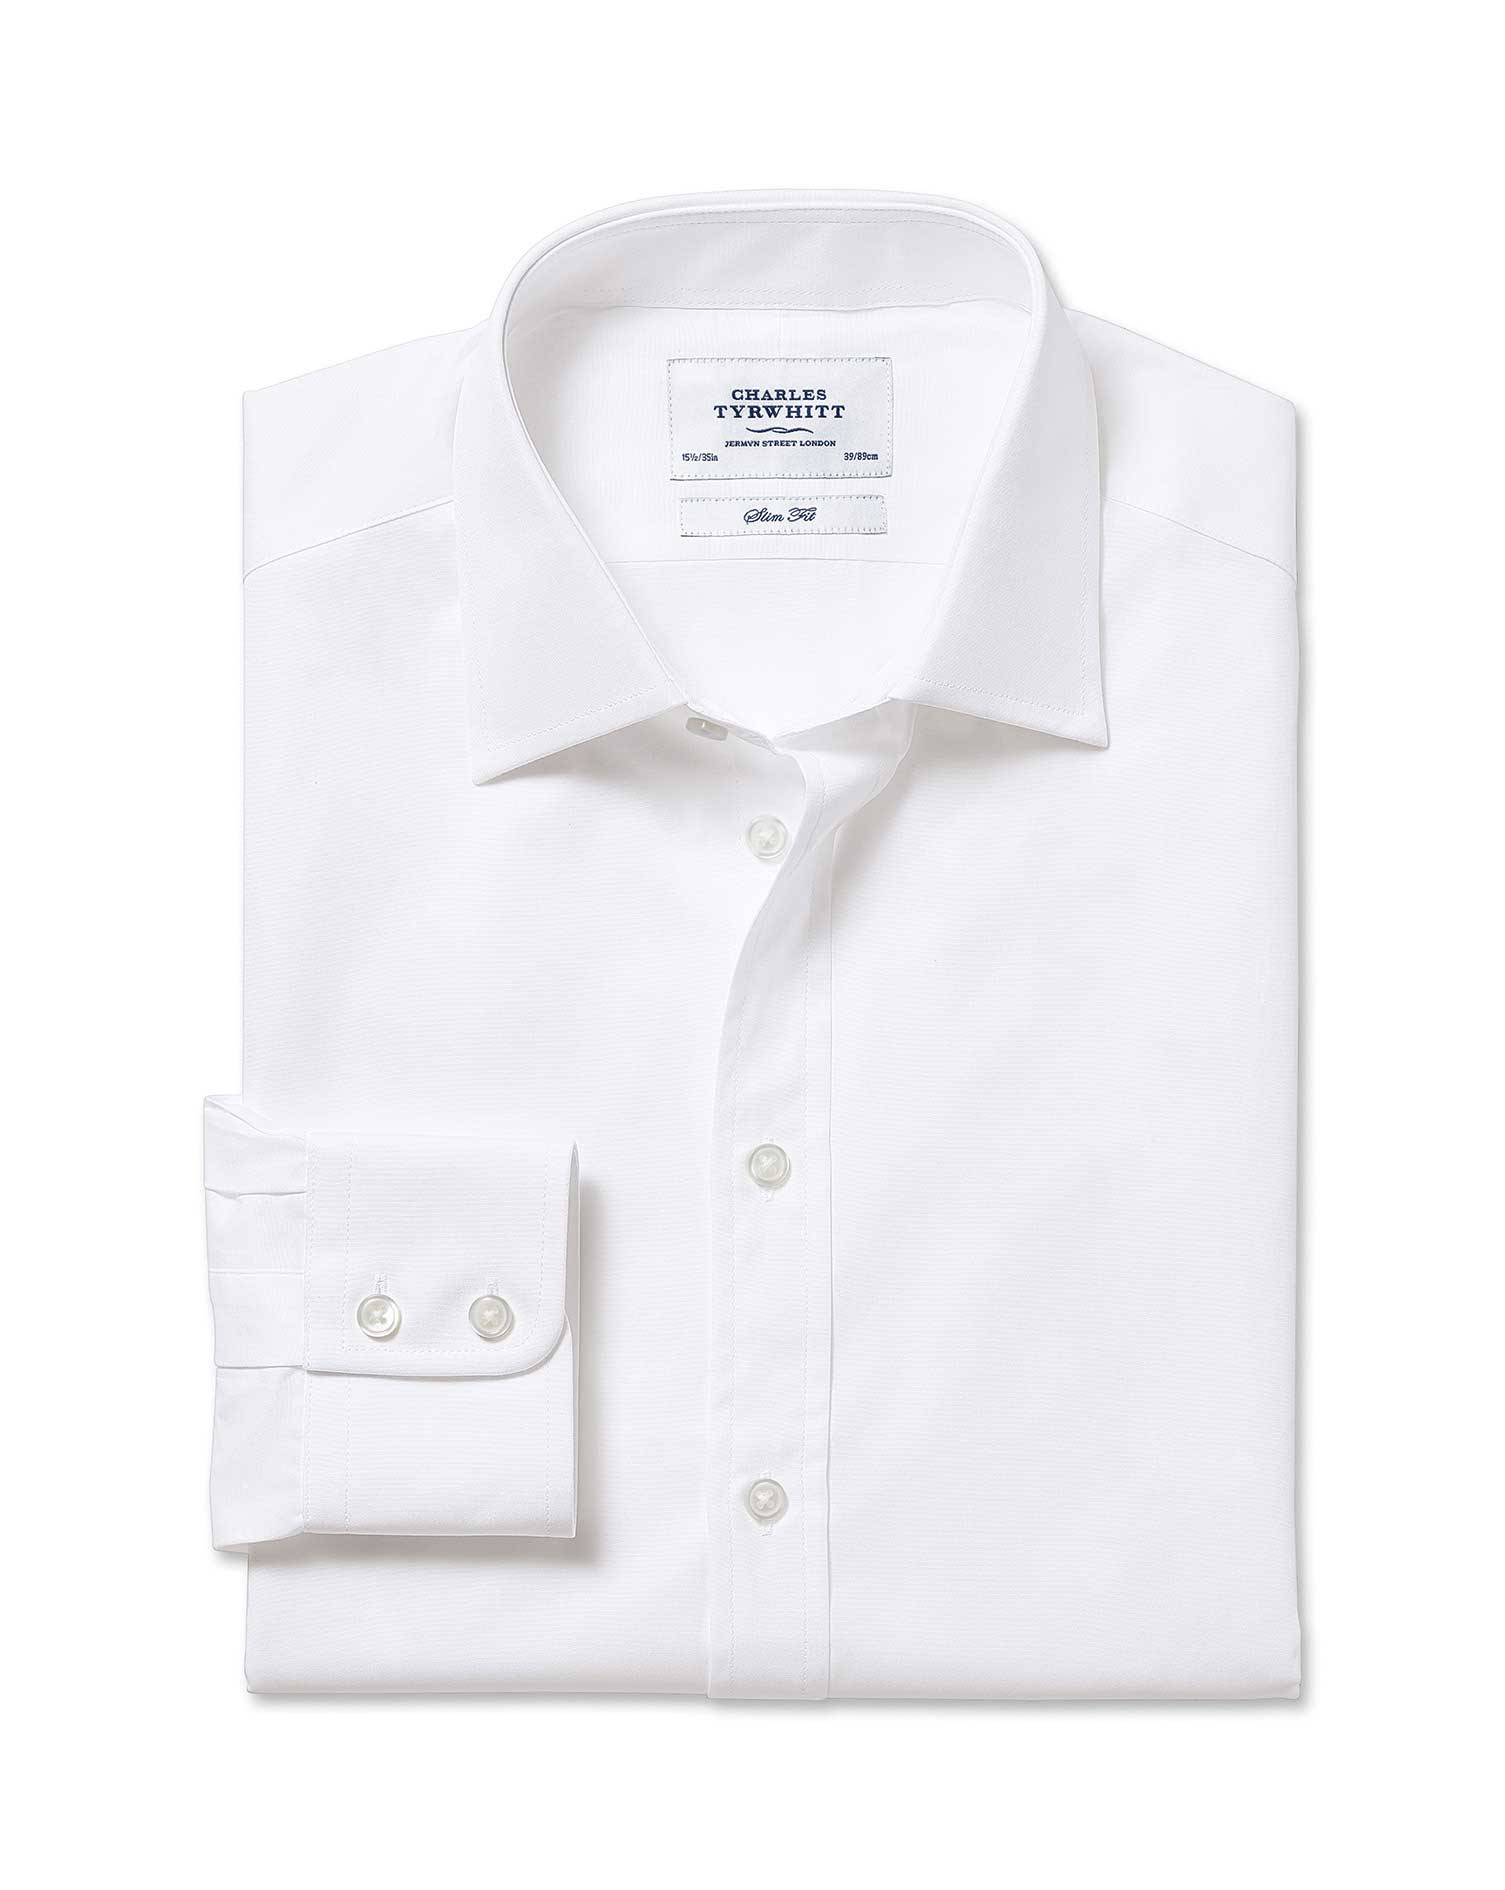 Slim Fit Egyptian Cotton Poplin White Formal Shirt Single Cuff Size 15/34 by Charles Tyrwhitt